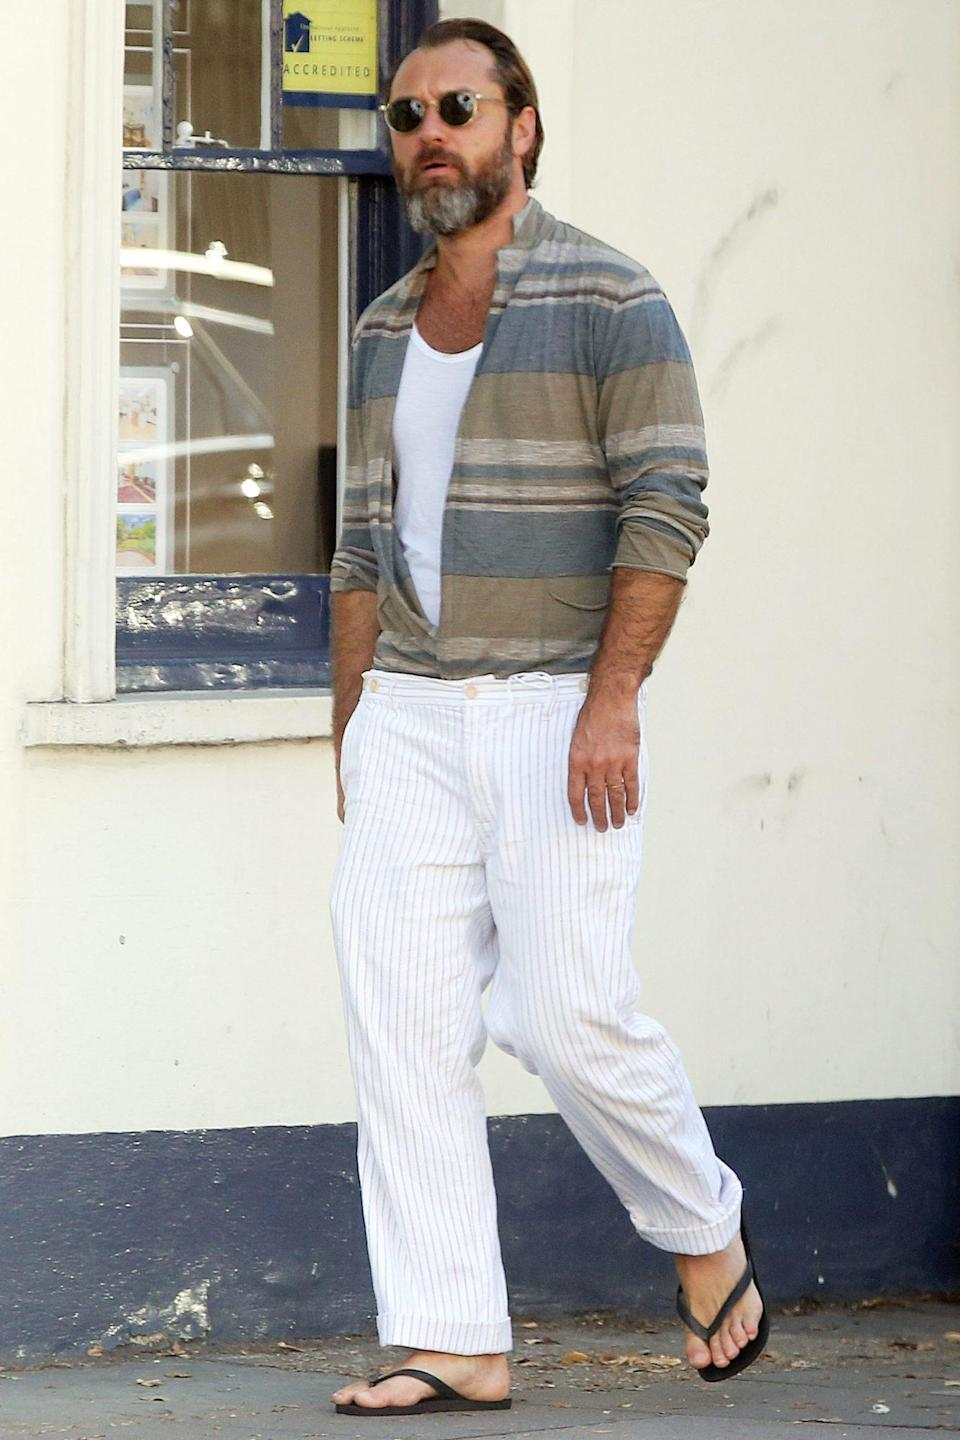 <p>Jude Law sports a summery, laid-back look while out for a walk on Monday in London.</p>